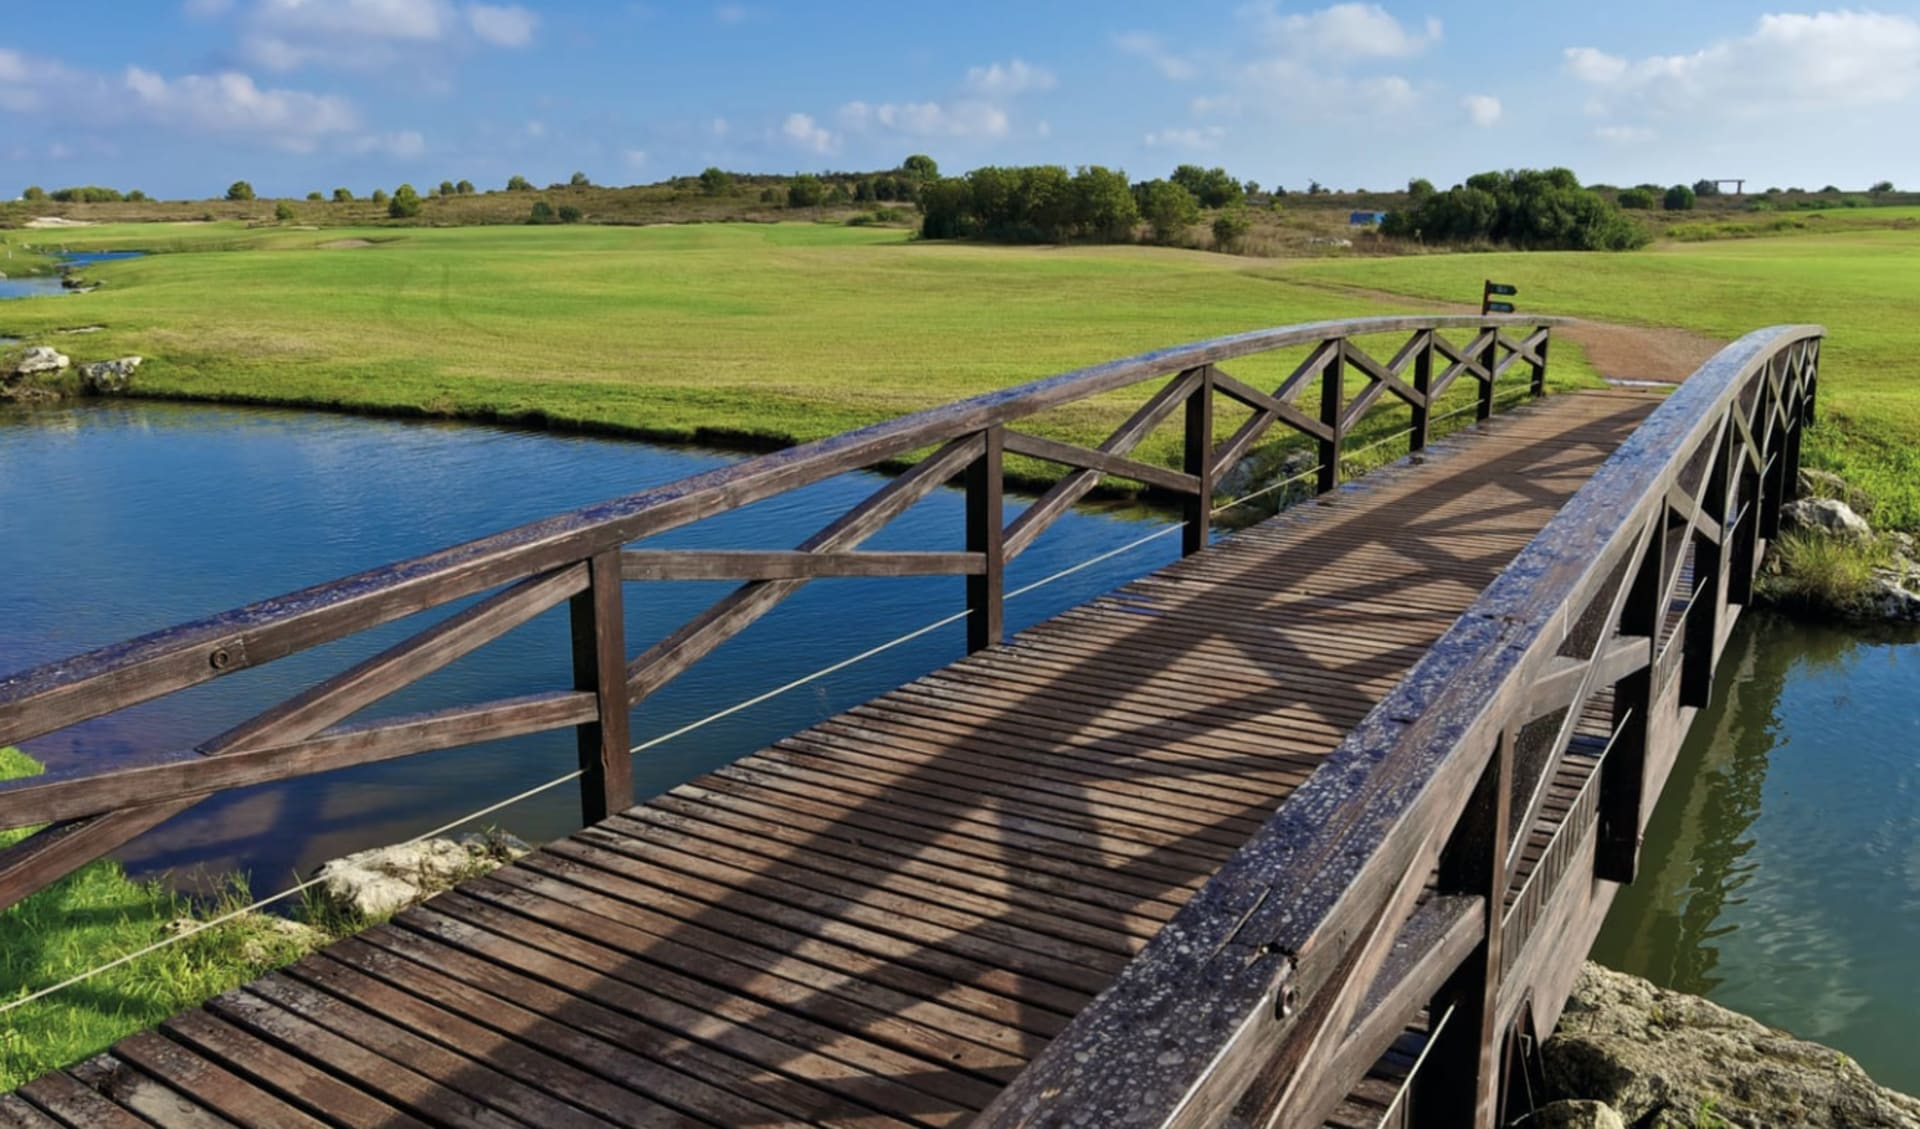 Acaya Golf Resort in Brindisi: Acaya-Golf-Resort_Golf_Bridge_IAGTO